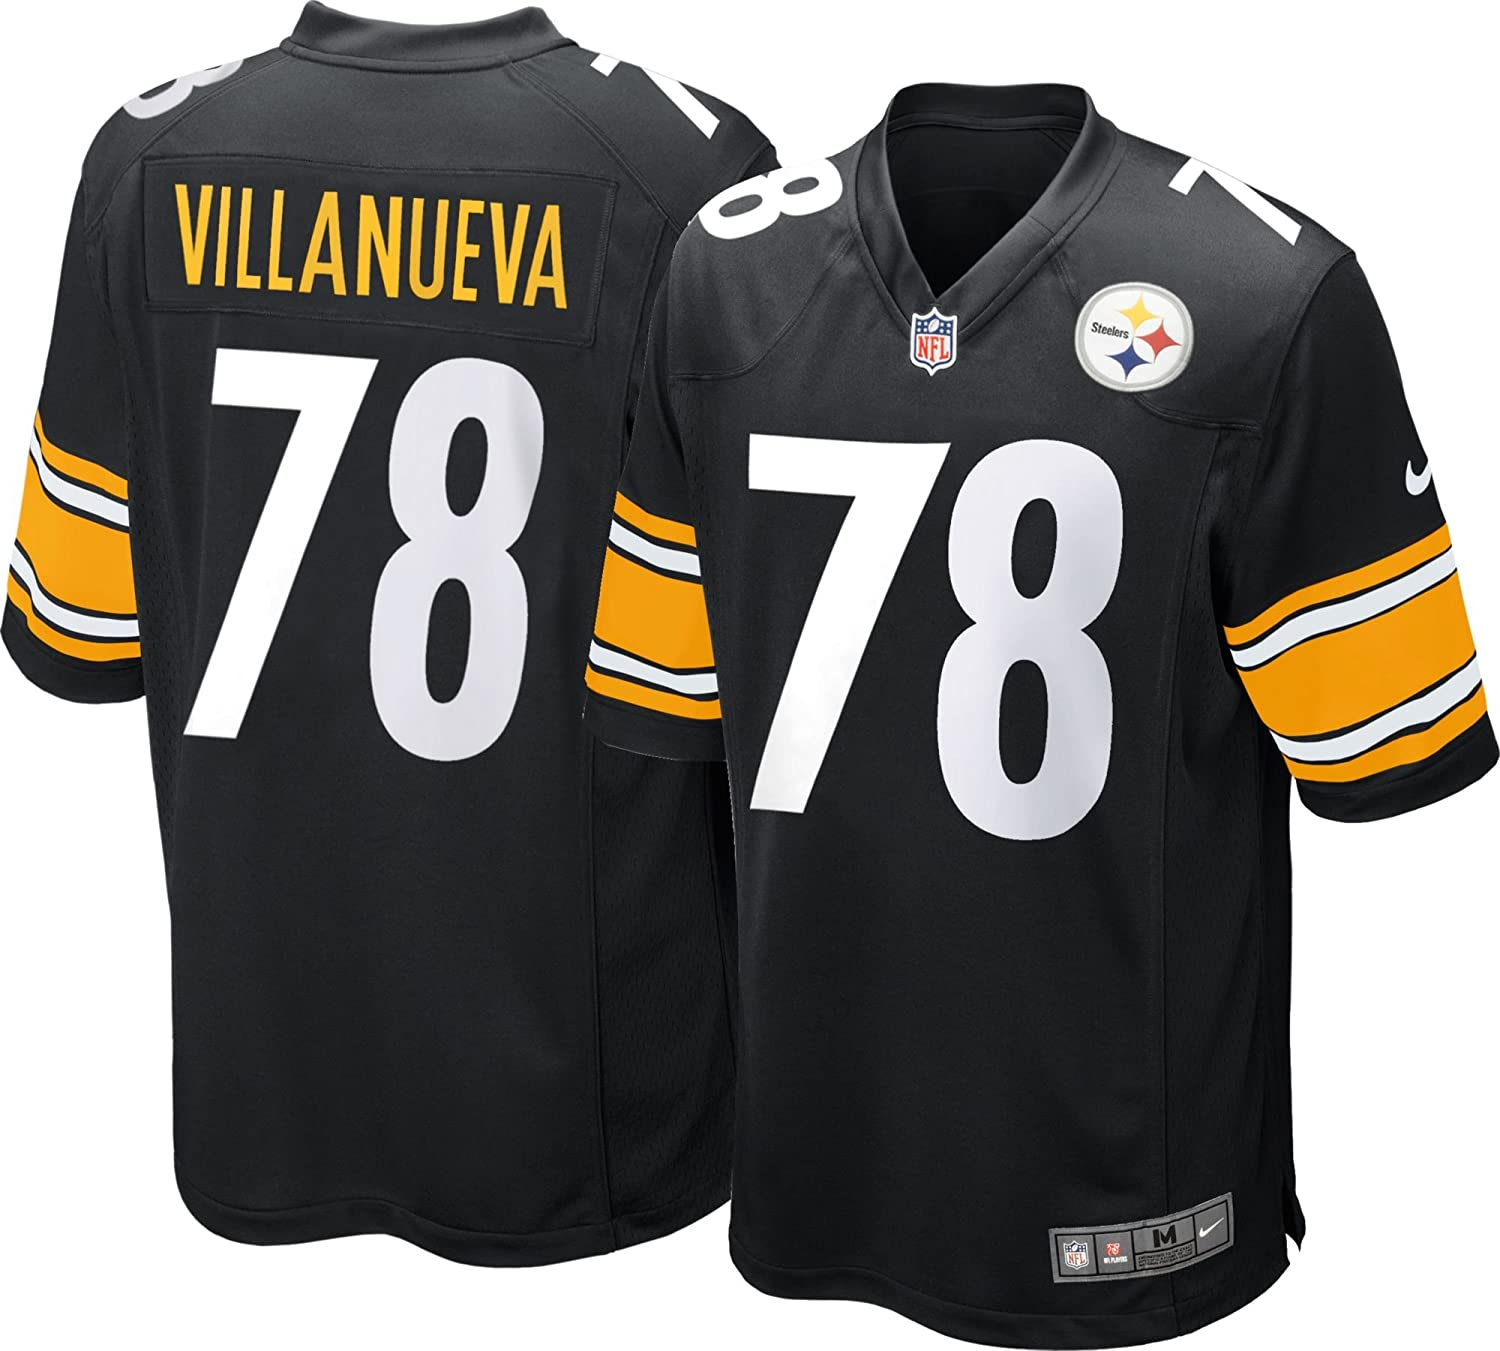 the latest f4a36 c0603 Nike NFL Pittsburgh Steelers Game Jersey Alejandro ...